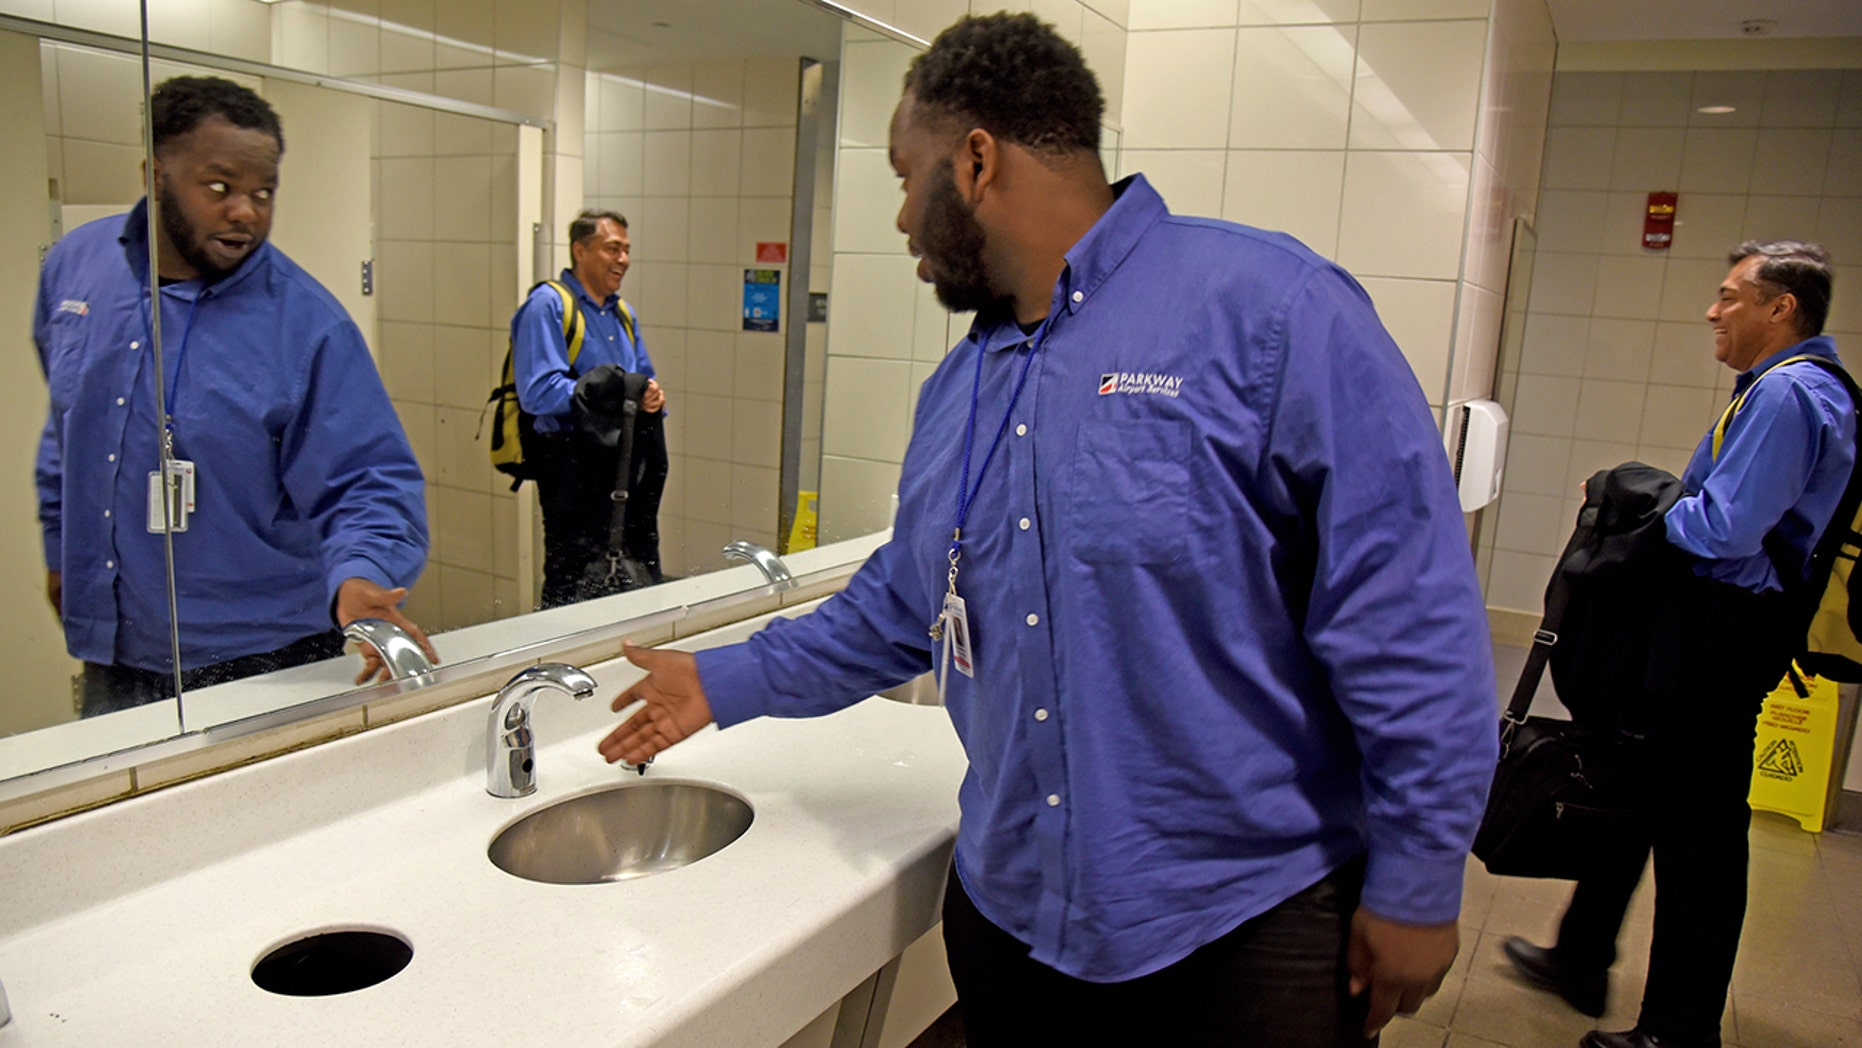 A worker with airport services checks the water pressure at Philadelphia International Airport following the water main breakage on Monday afternoon.